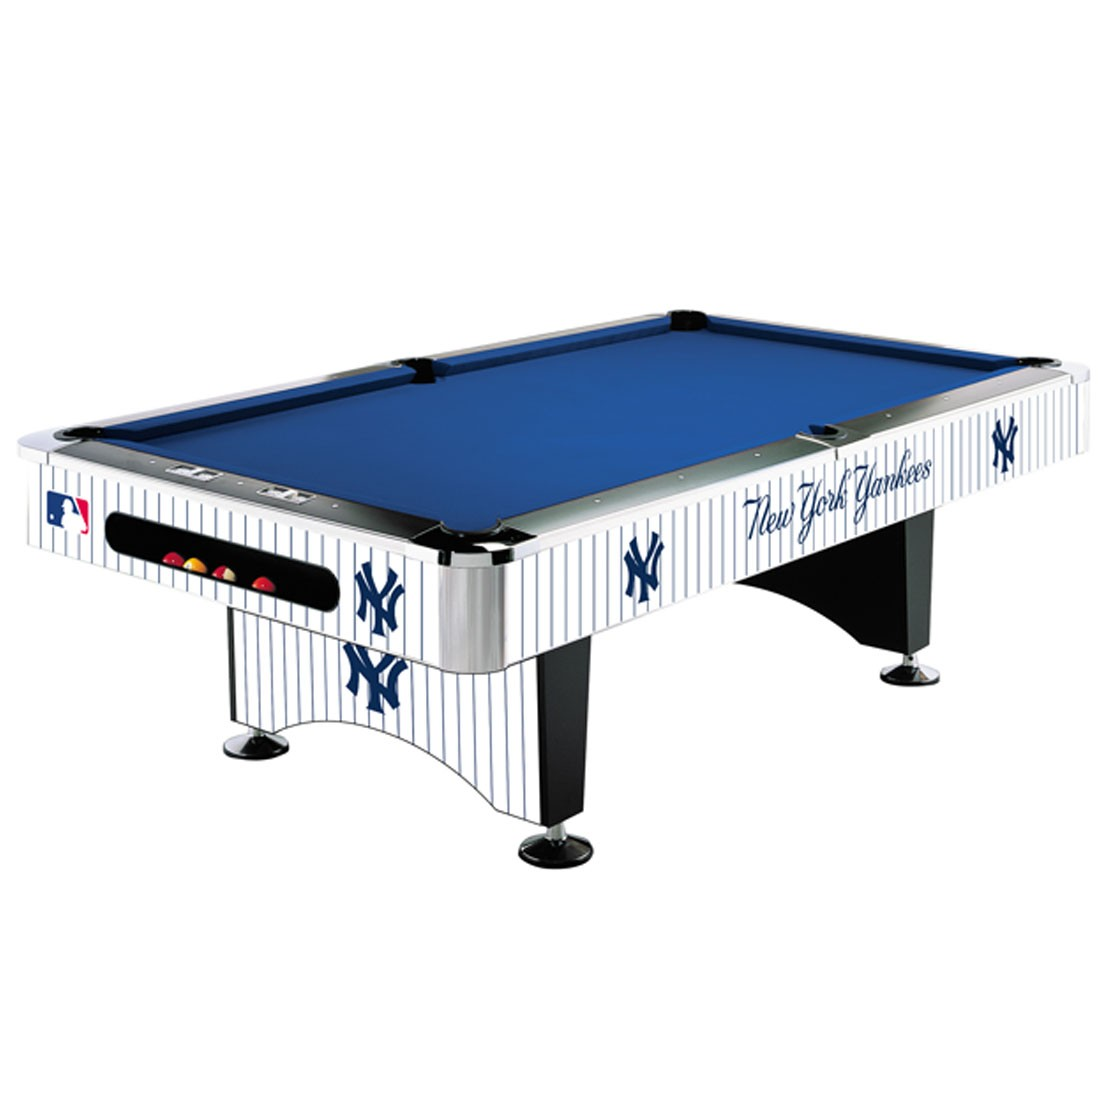 MLB Pool Tables R Us - Sports authority pool table